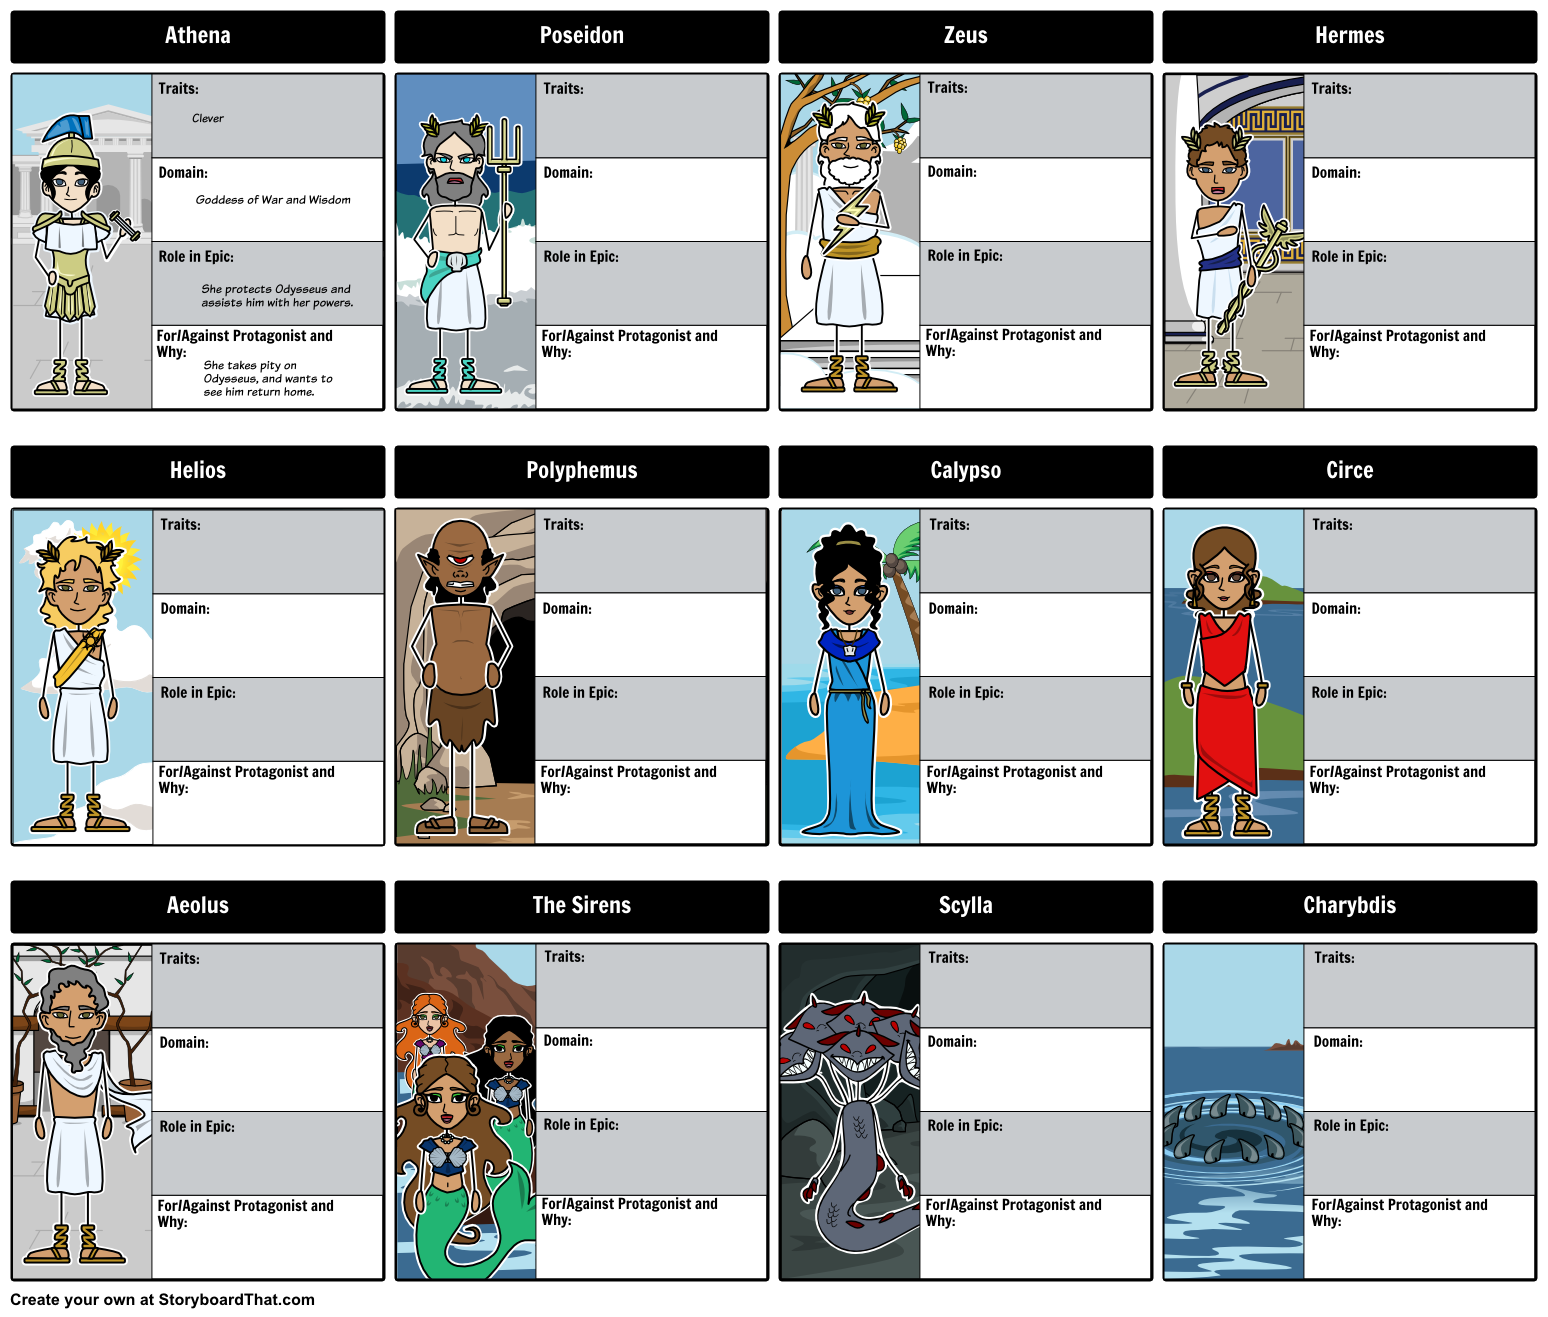 the character of odysseus in homers odyssey Odysseus o-dis-e-us characters in the odyssey characters marked with are recurring characters who play significant odyssey study guide books 1-8docx.